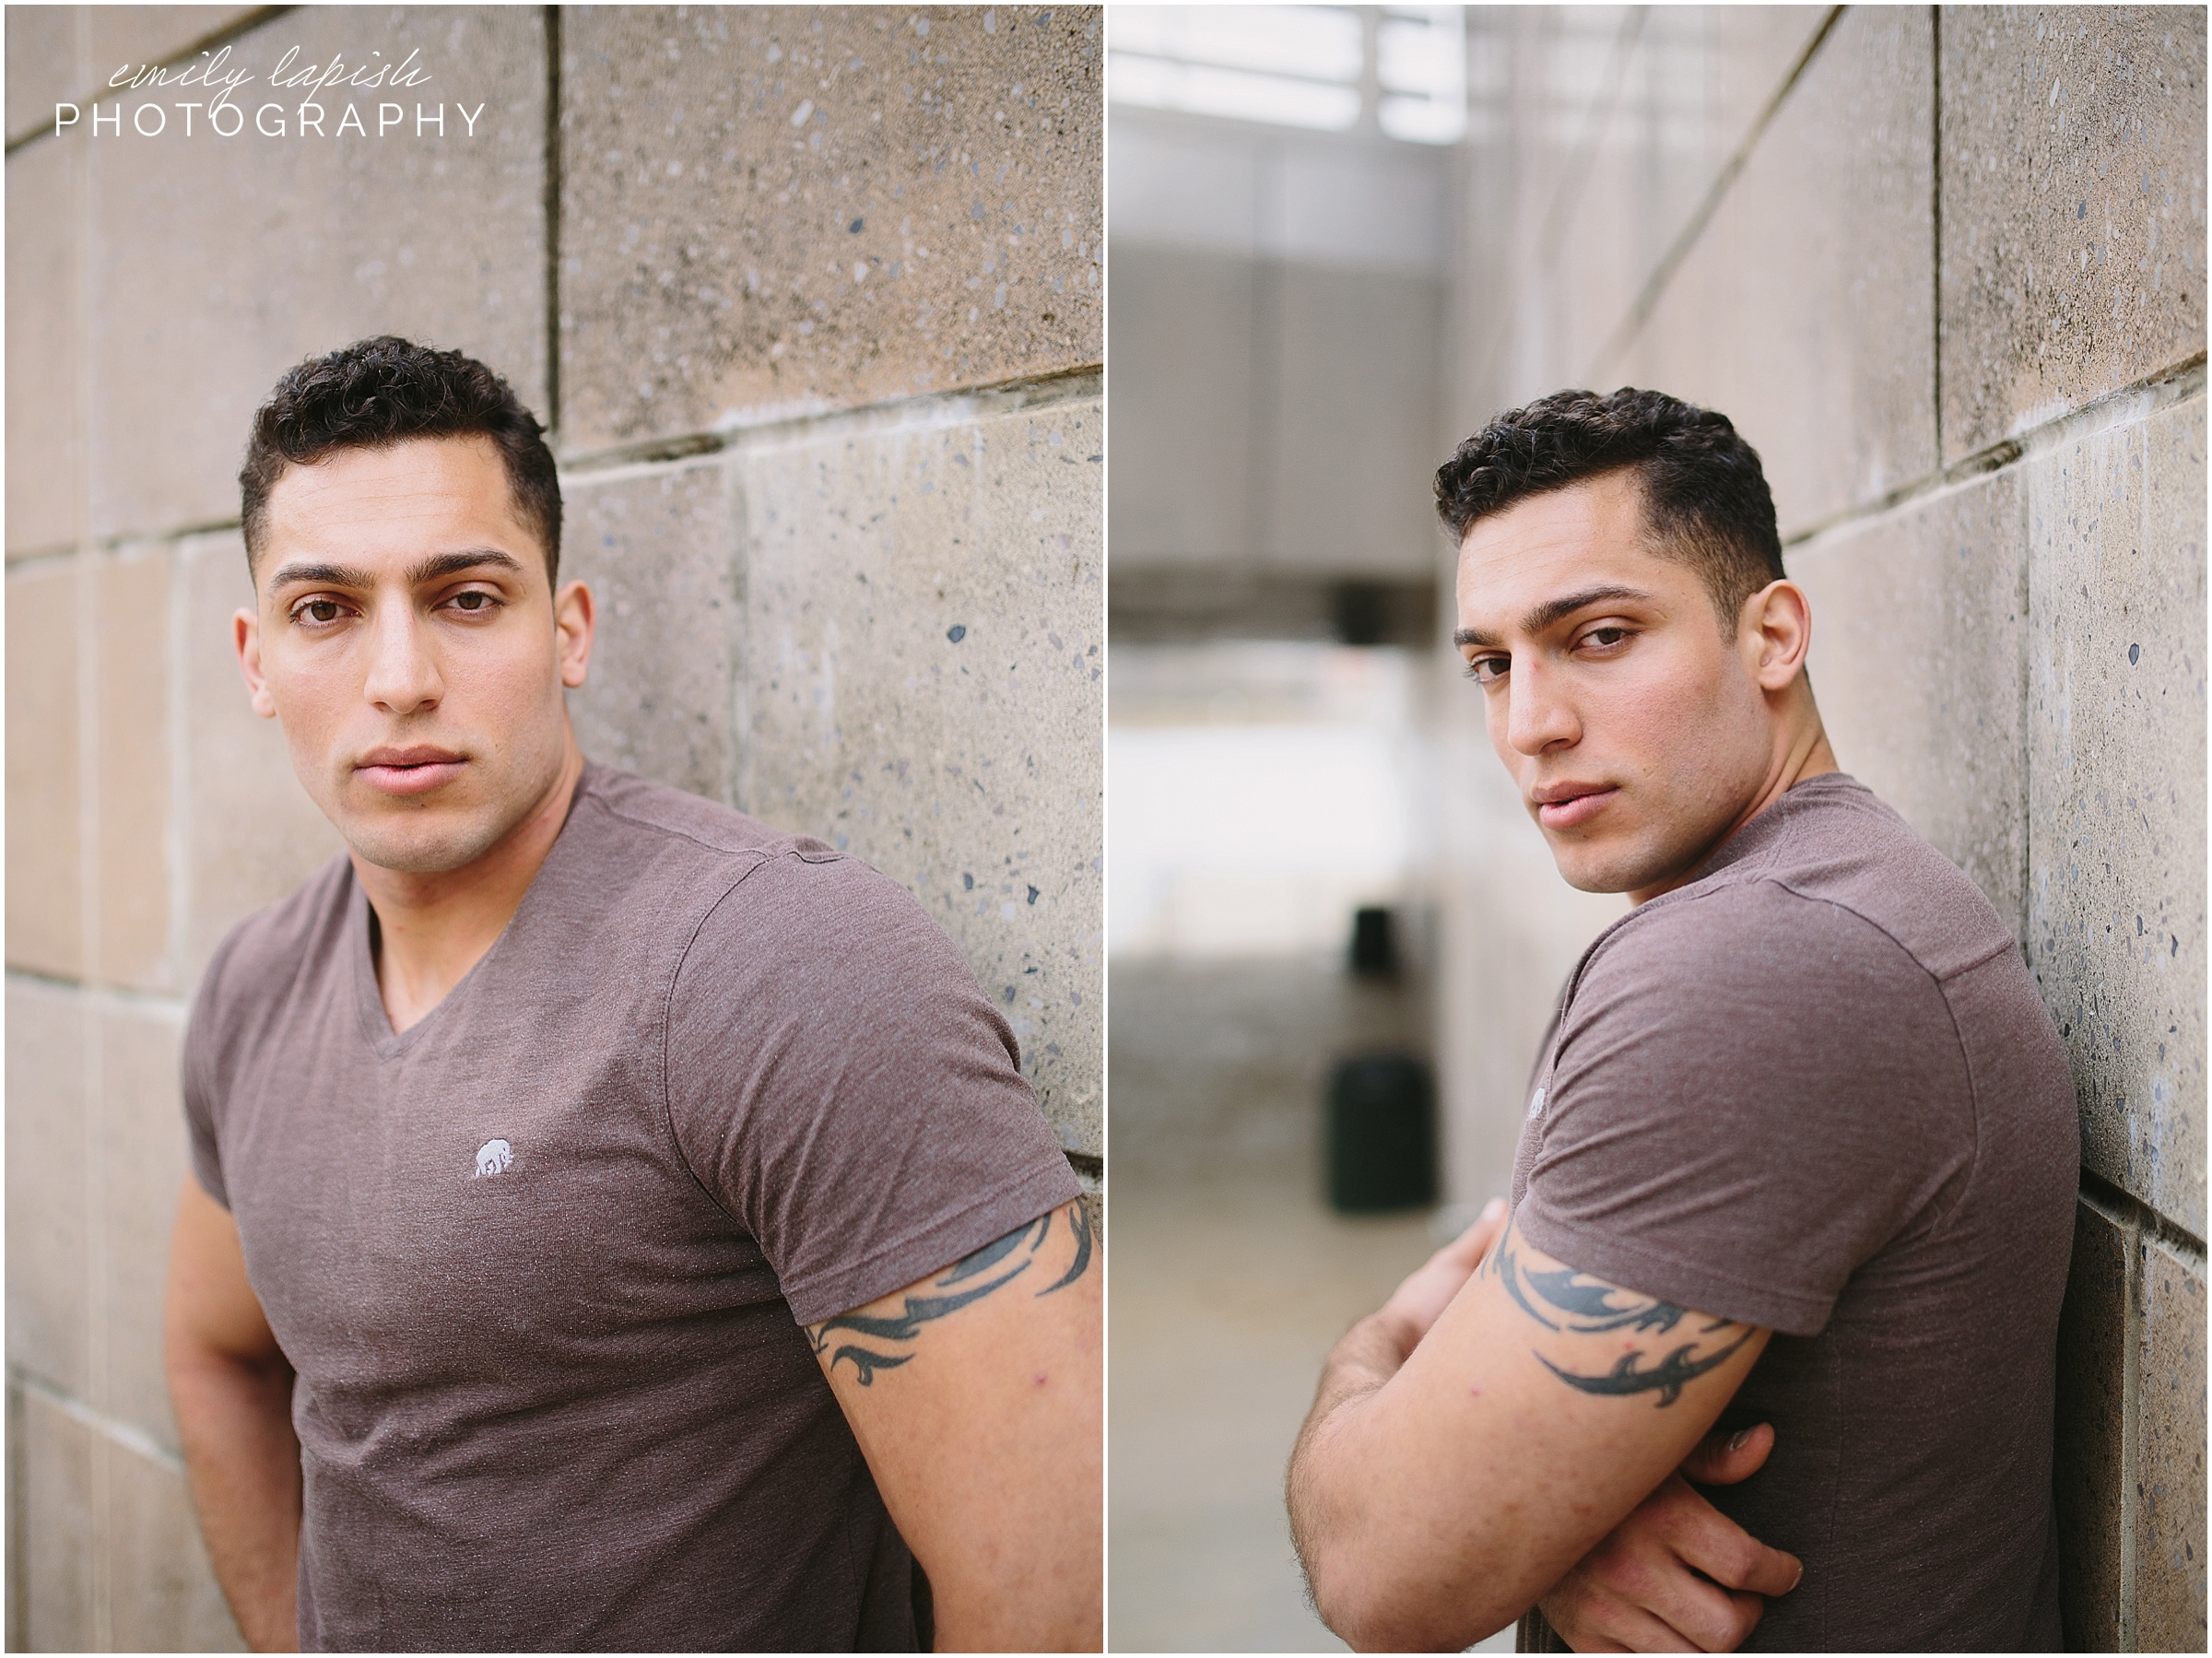 Actor headshots with Emily Lapish Photography in Chattanooga TN_0221